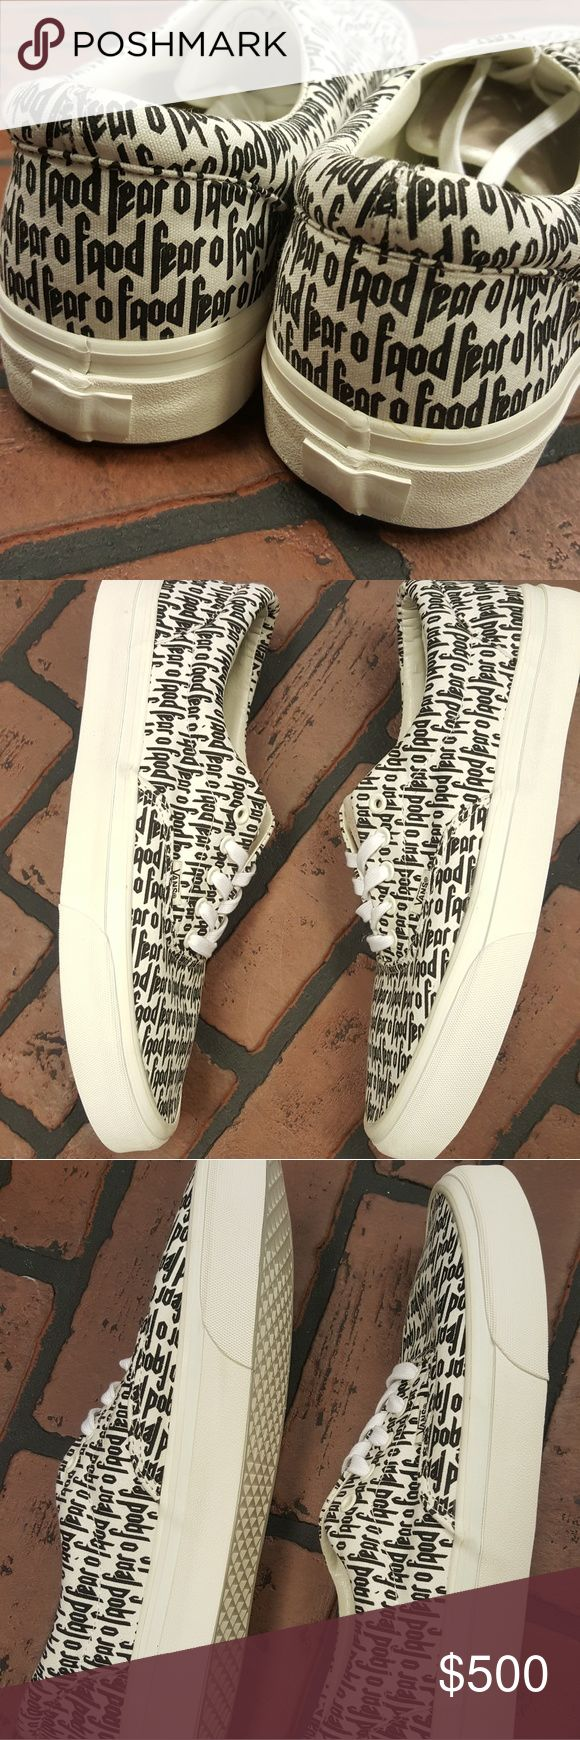 FEAR OF GOD X VANS ERA 95 REISSUE Brand new without box Vans Shoes Sneakers